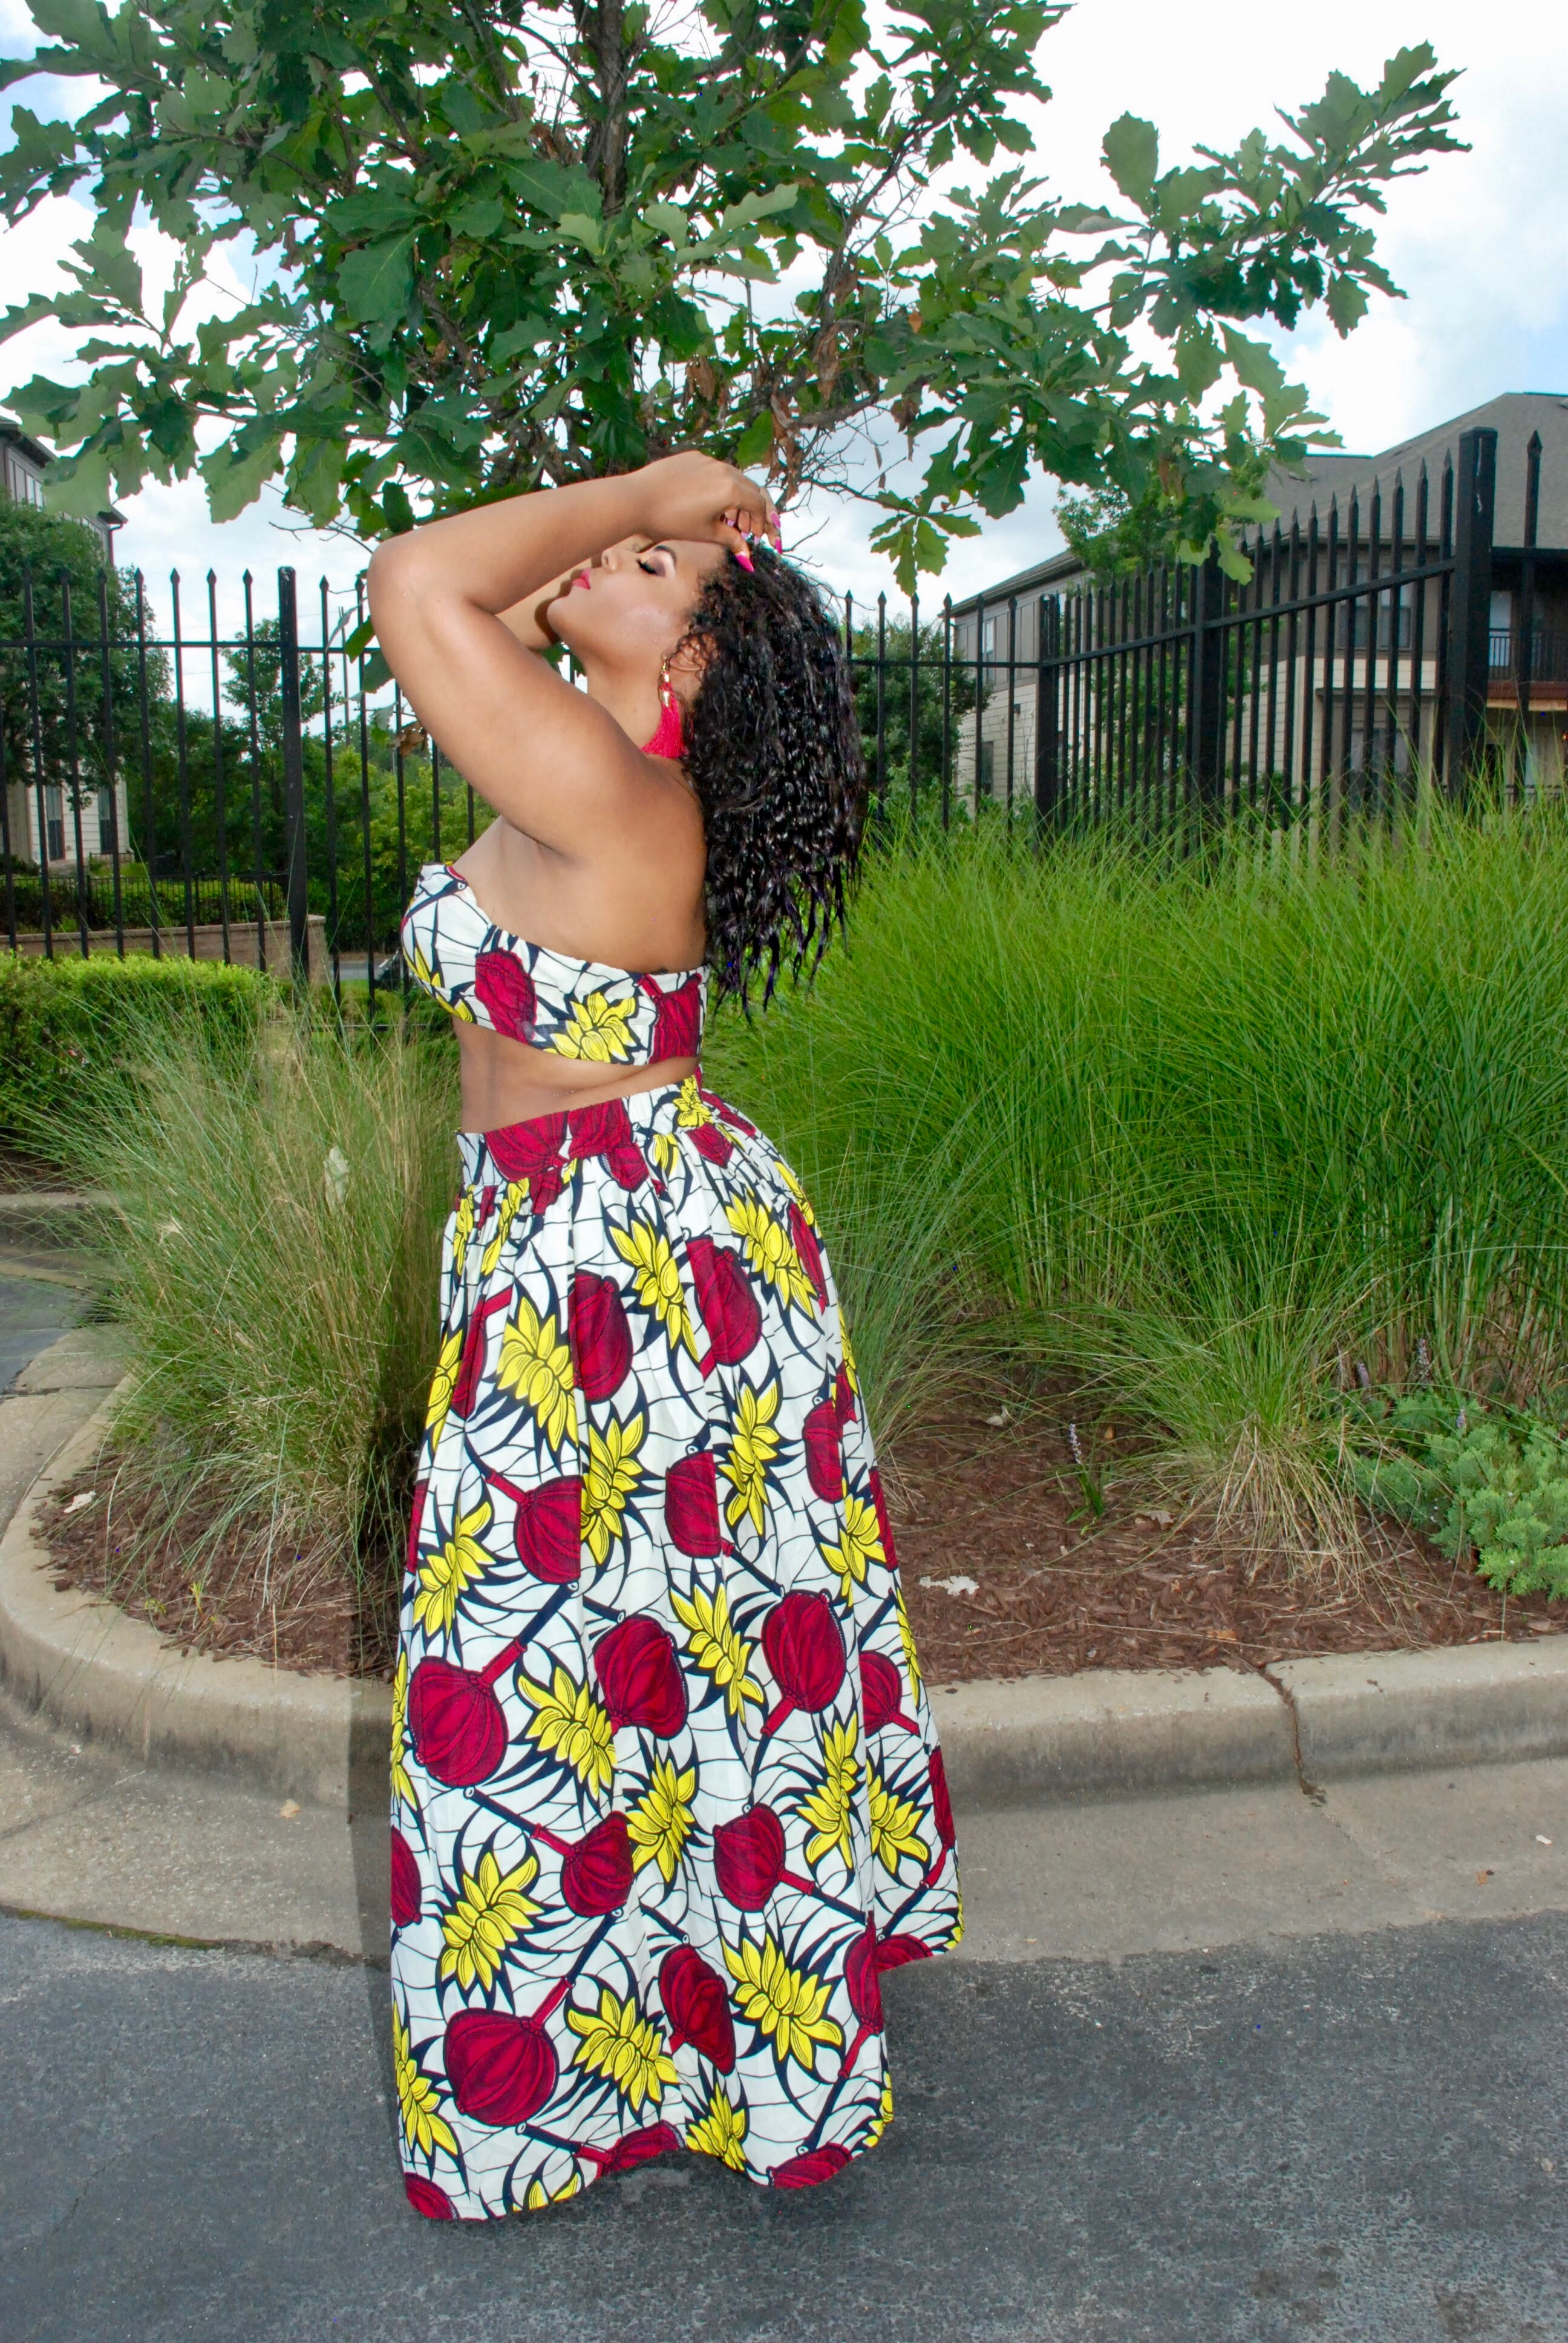 Summer Style With Grass Fields: Bandeau Tops and African Prints graphic